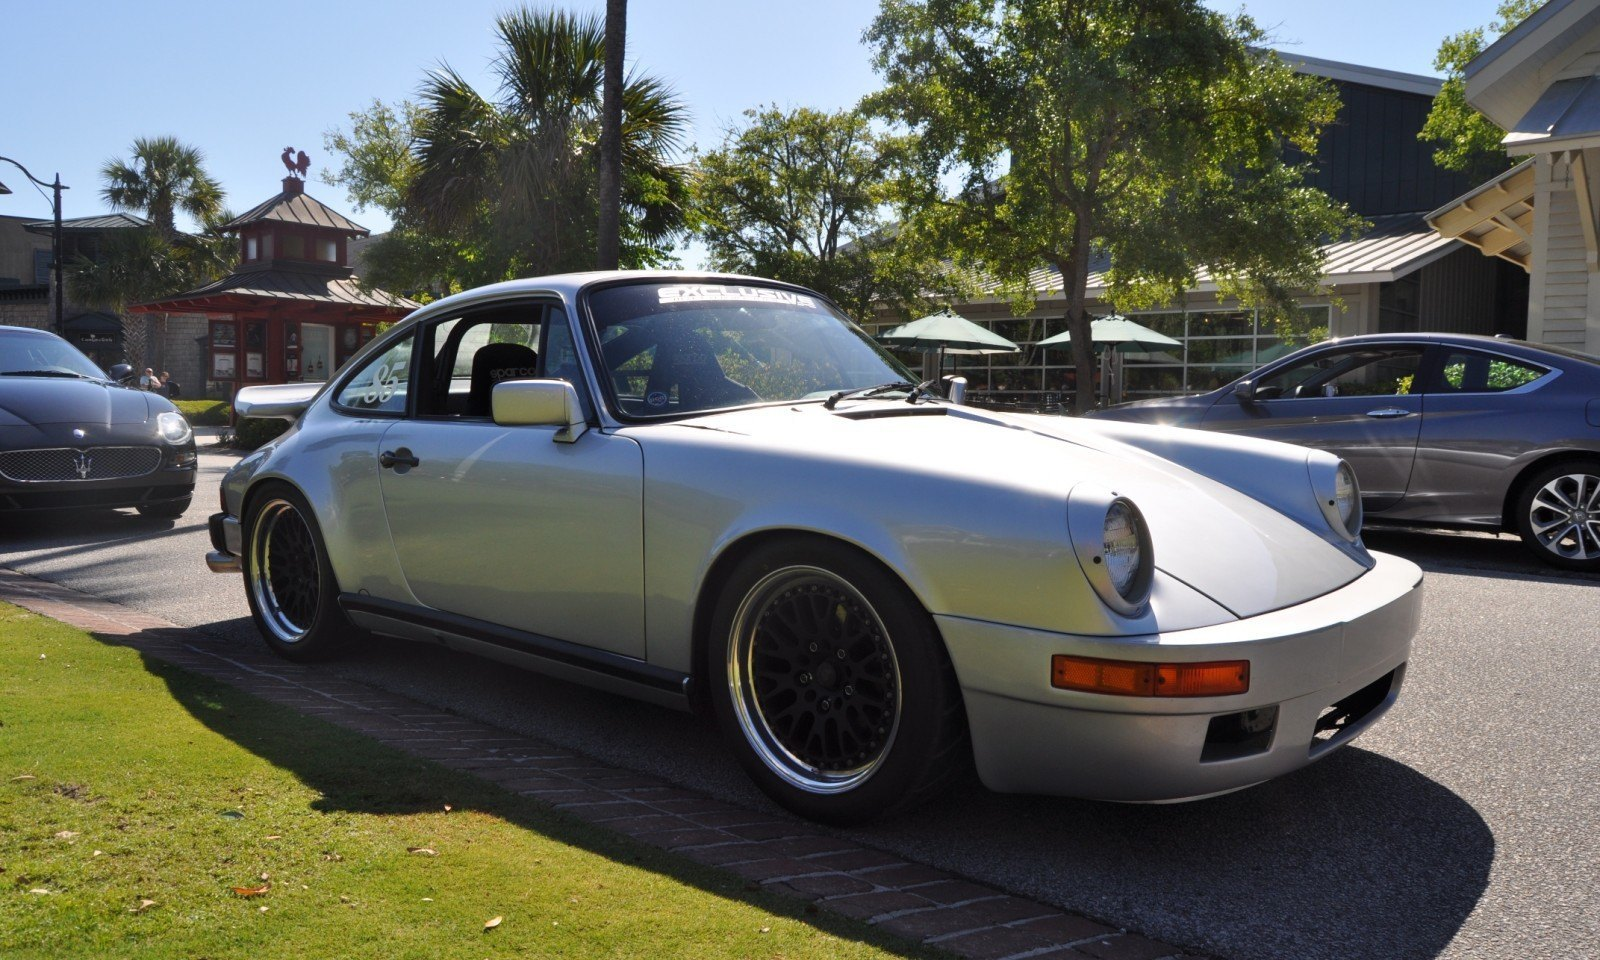 Track-Prepped Porsche 986 911 Whale Tale Is Mighty Desirable Machine 17